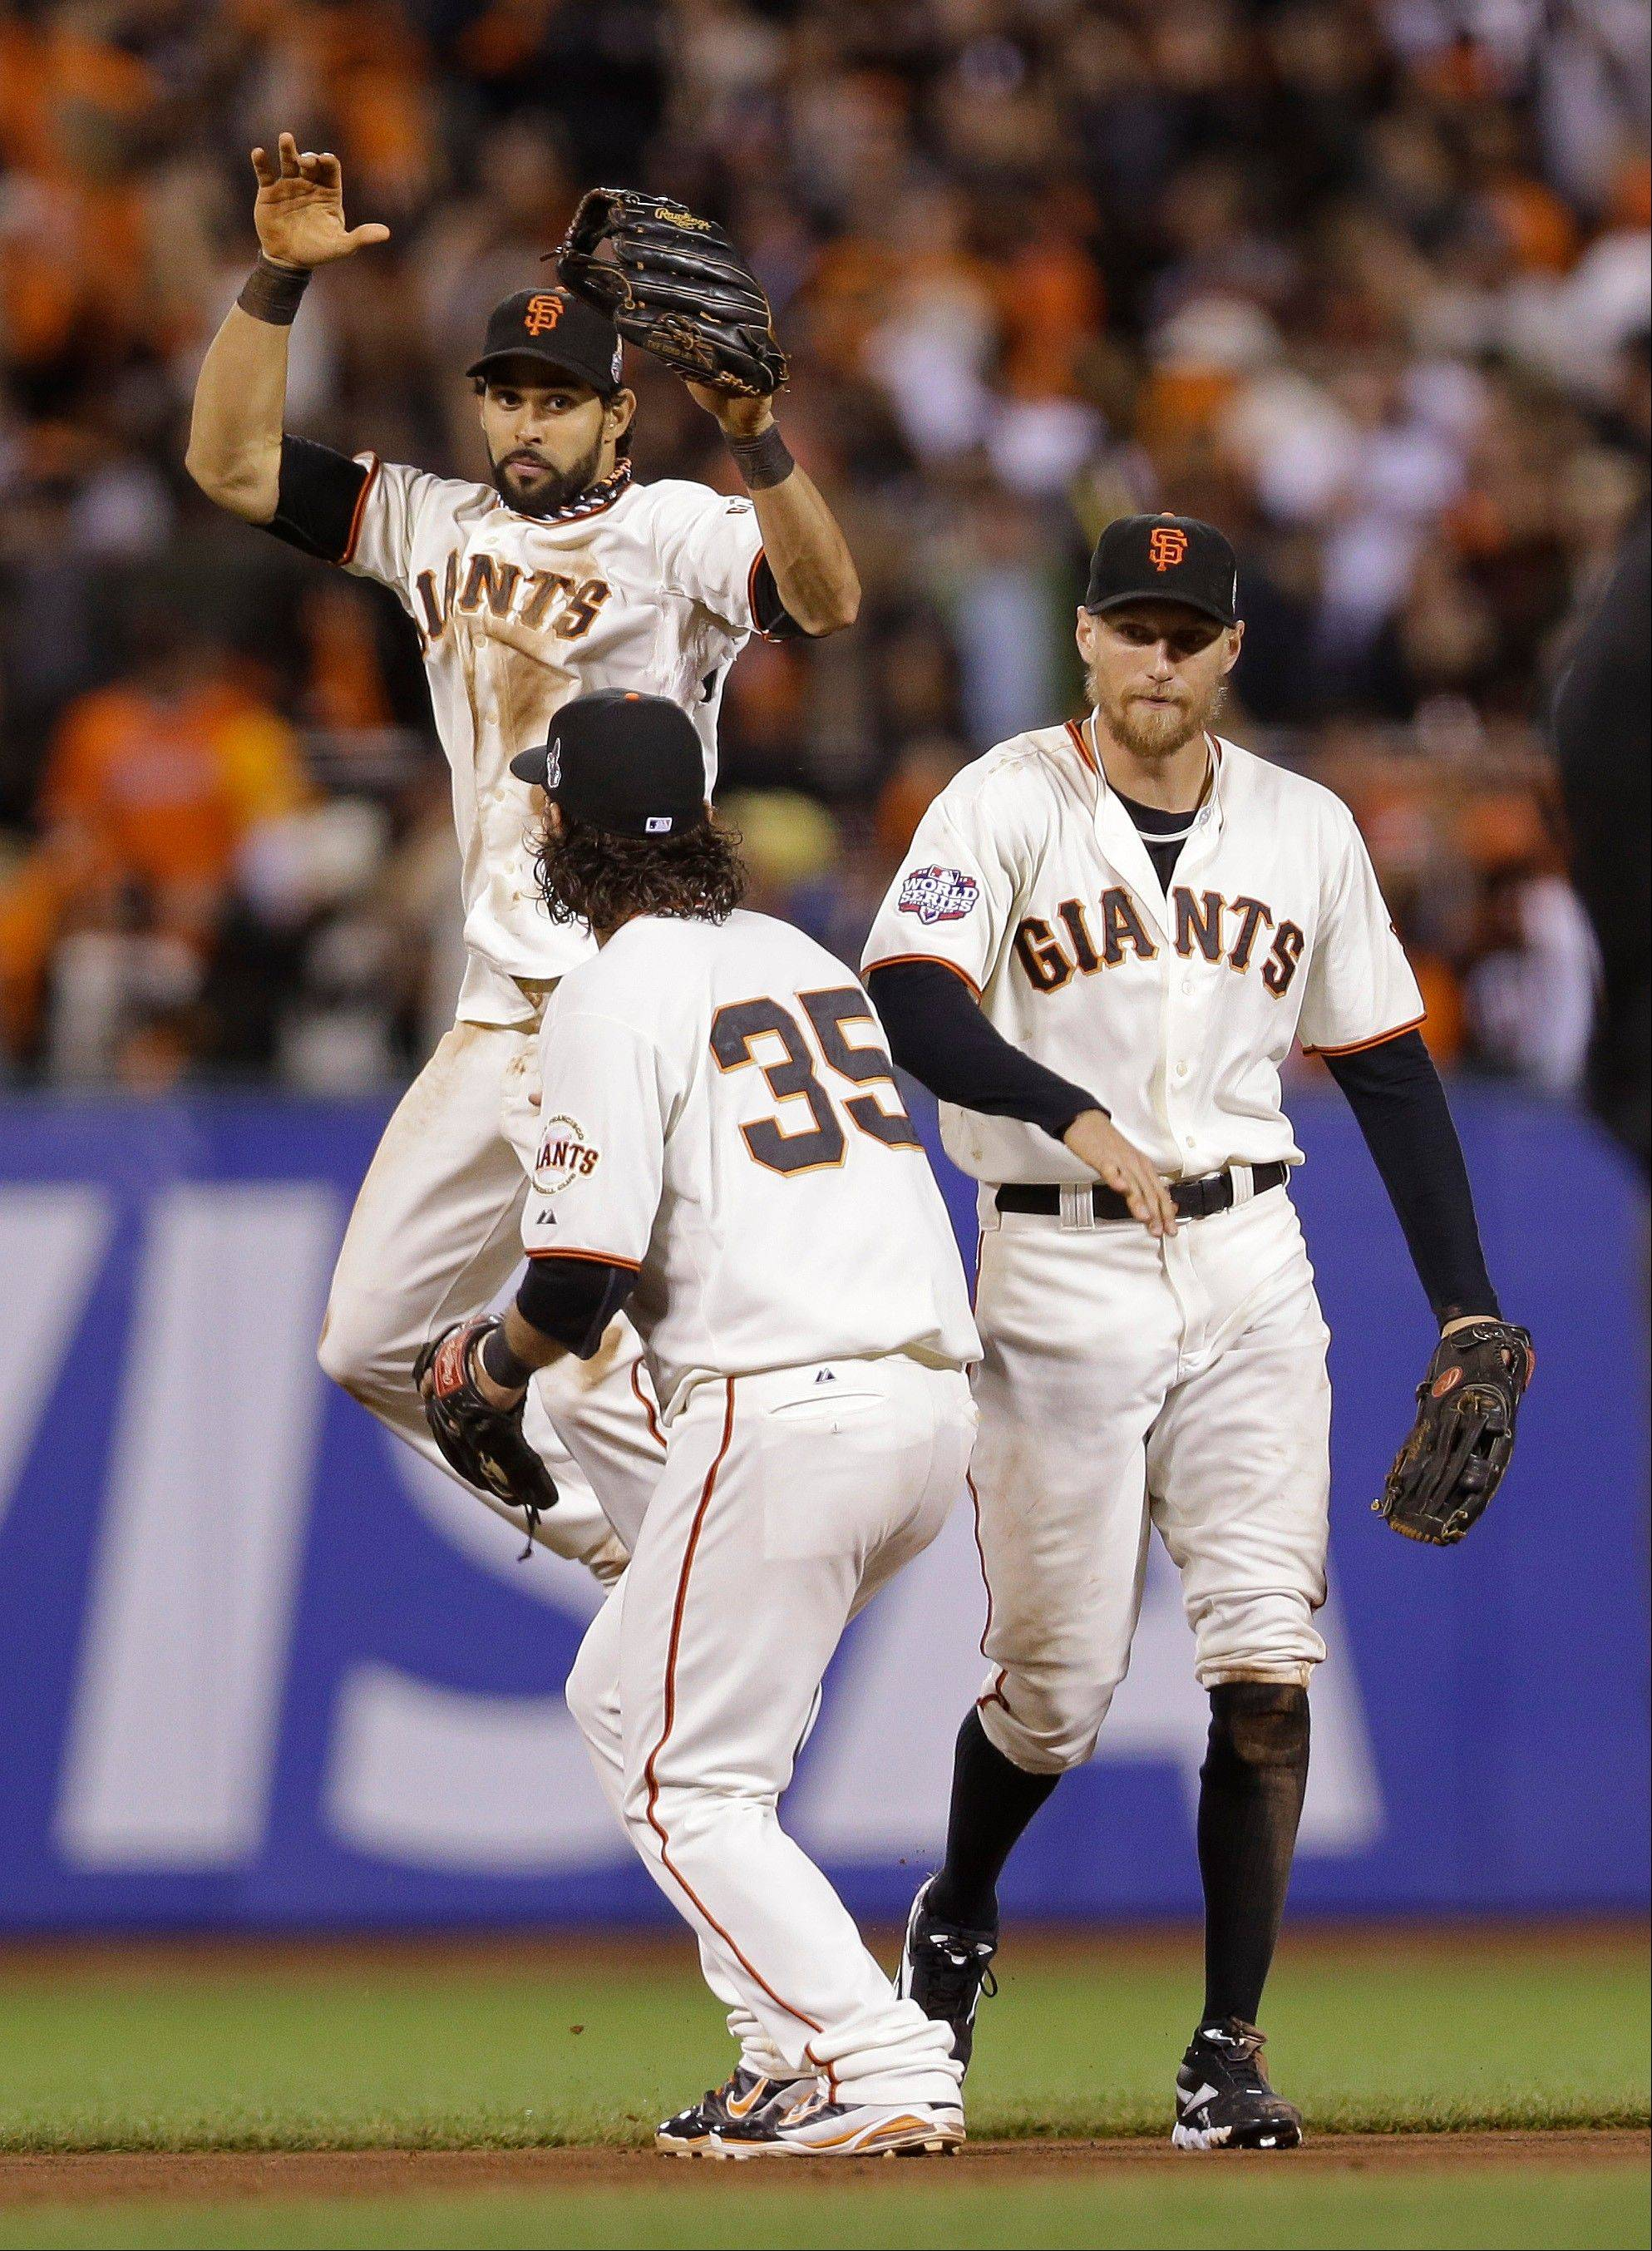 San Francisco Giants' Angel Pagan, Brandon Crawford (35) and Hunter Pence, right, celebrate after the Giants defeated the Detroit Tigers, 2-0, in Game 2 of baseball's World Series Thursday, Oct. 25, 2012, in San Francisco.